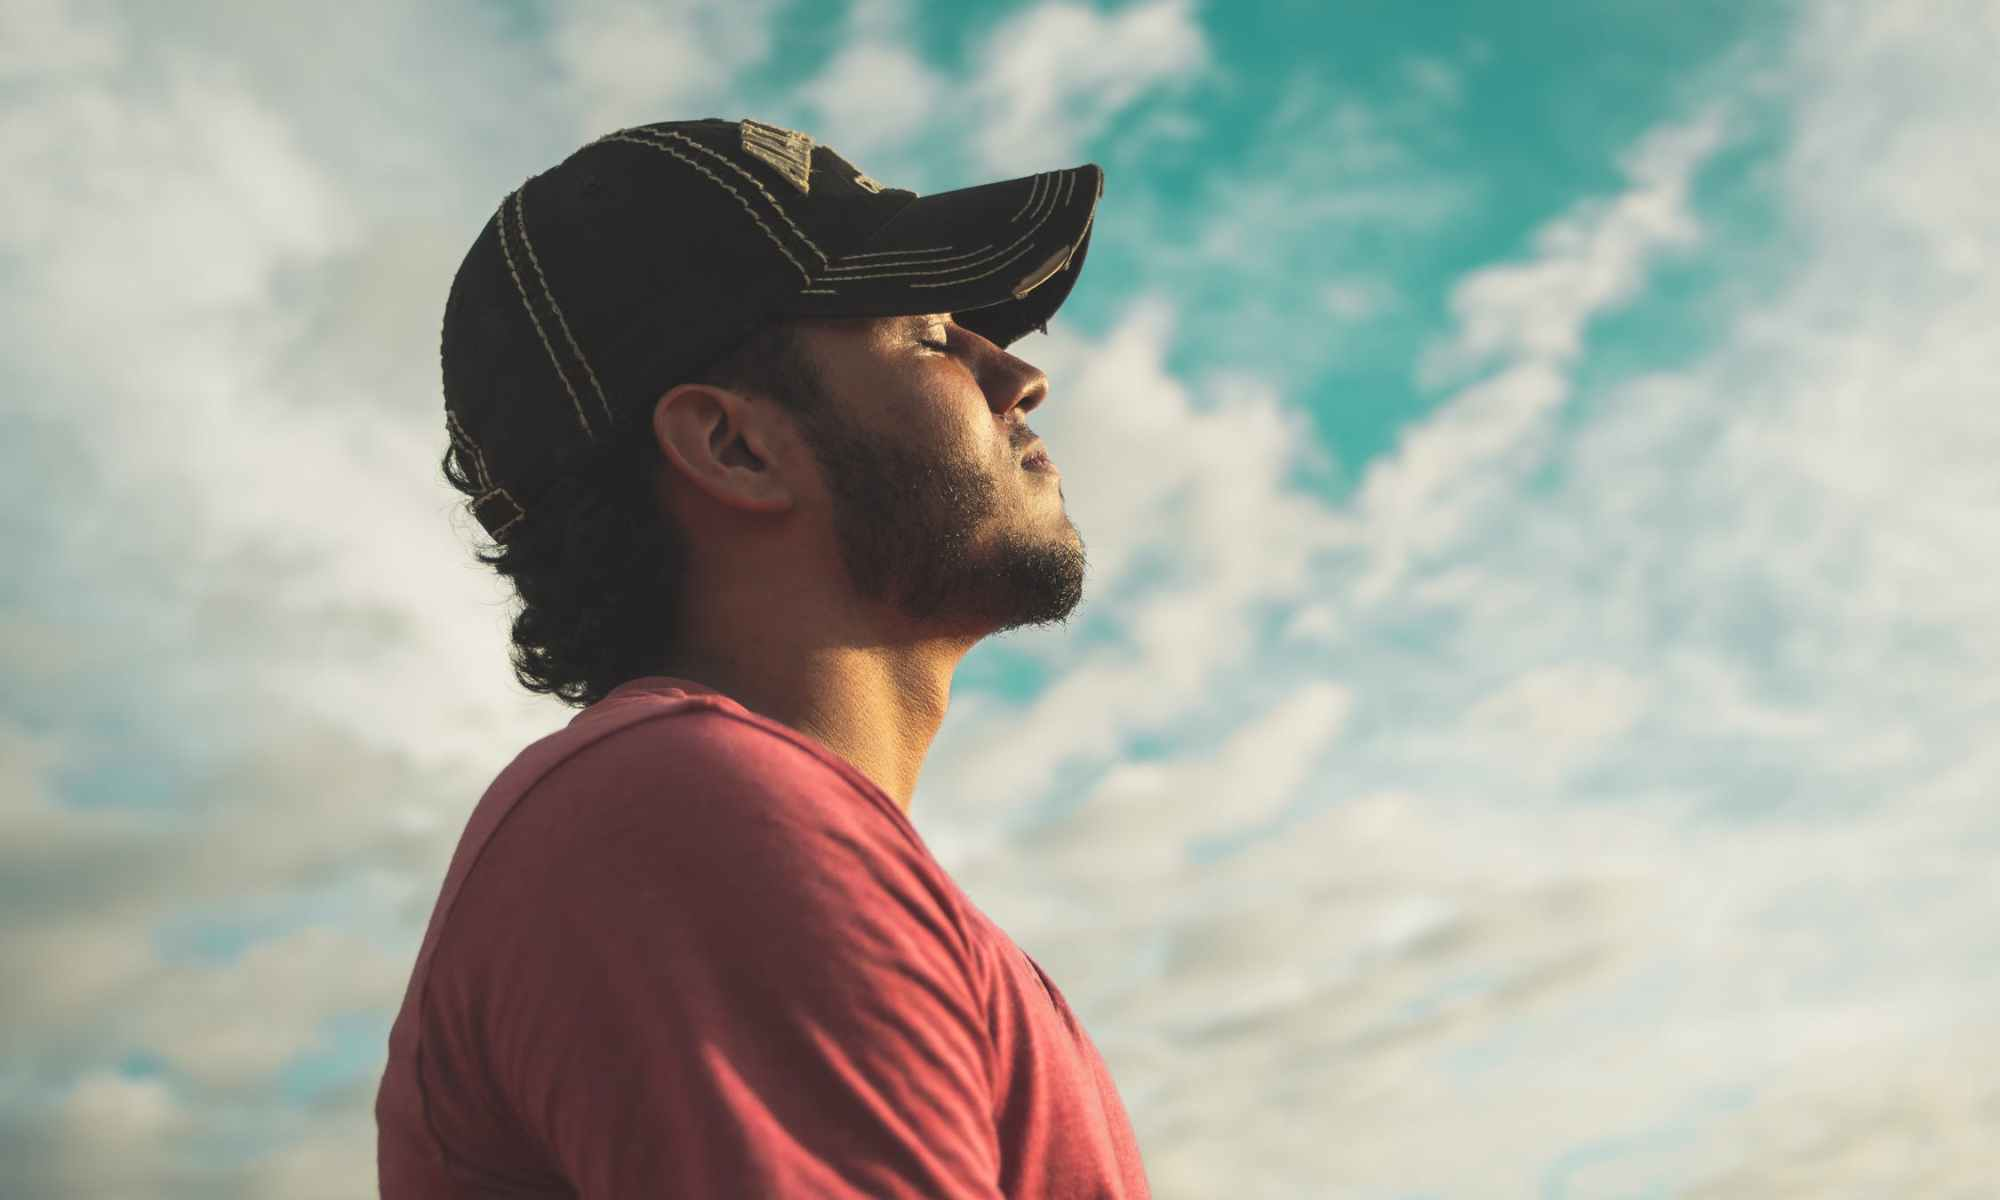 Young man wearing black hat and red shirt with eyes closed under cloudy sky